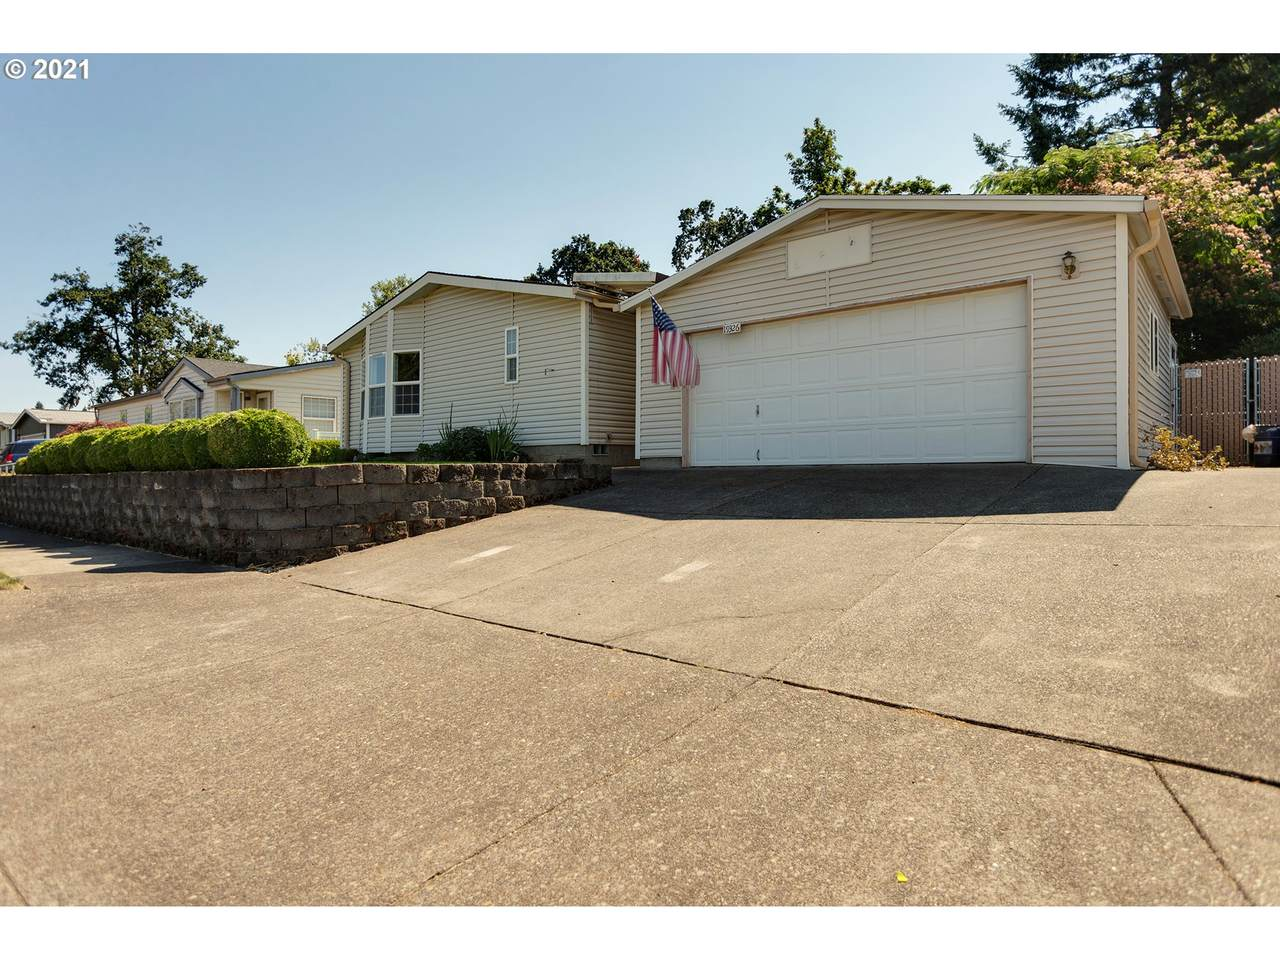 19326 Spring Valley Dr - Photo 1